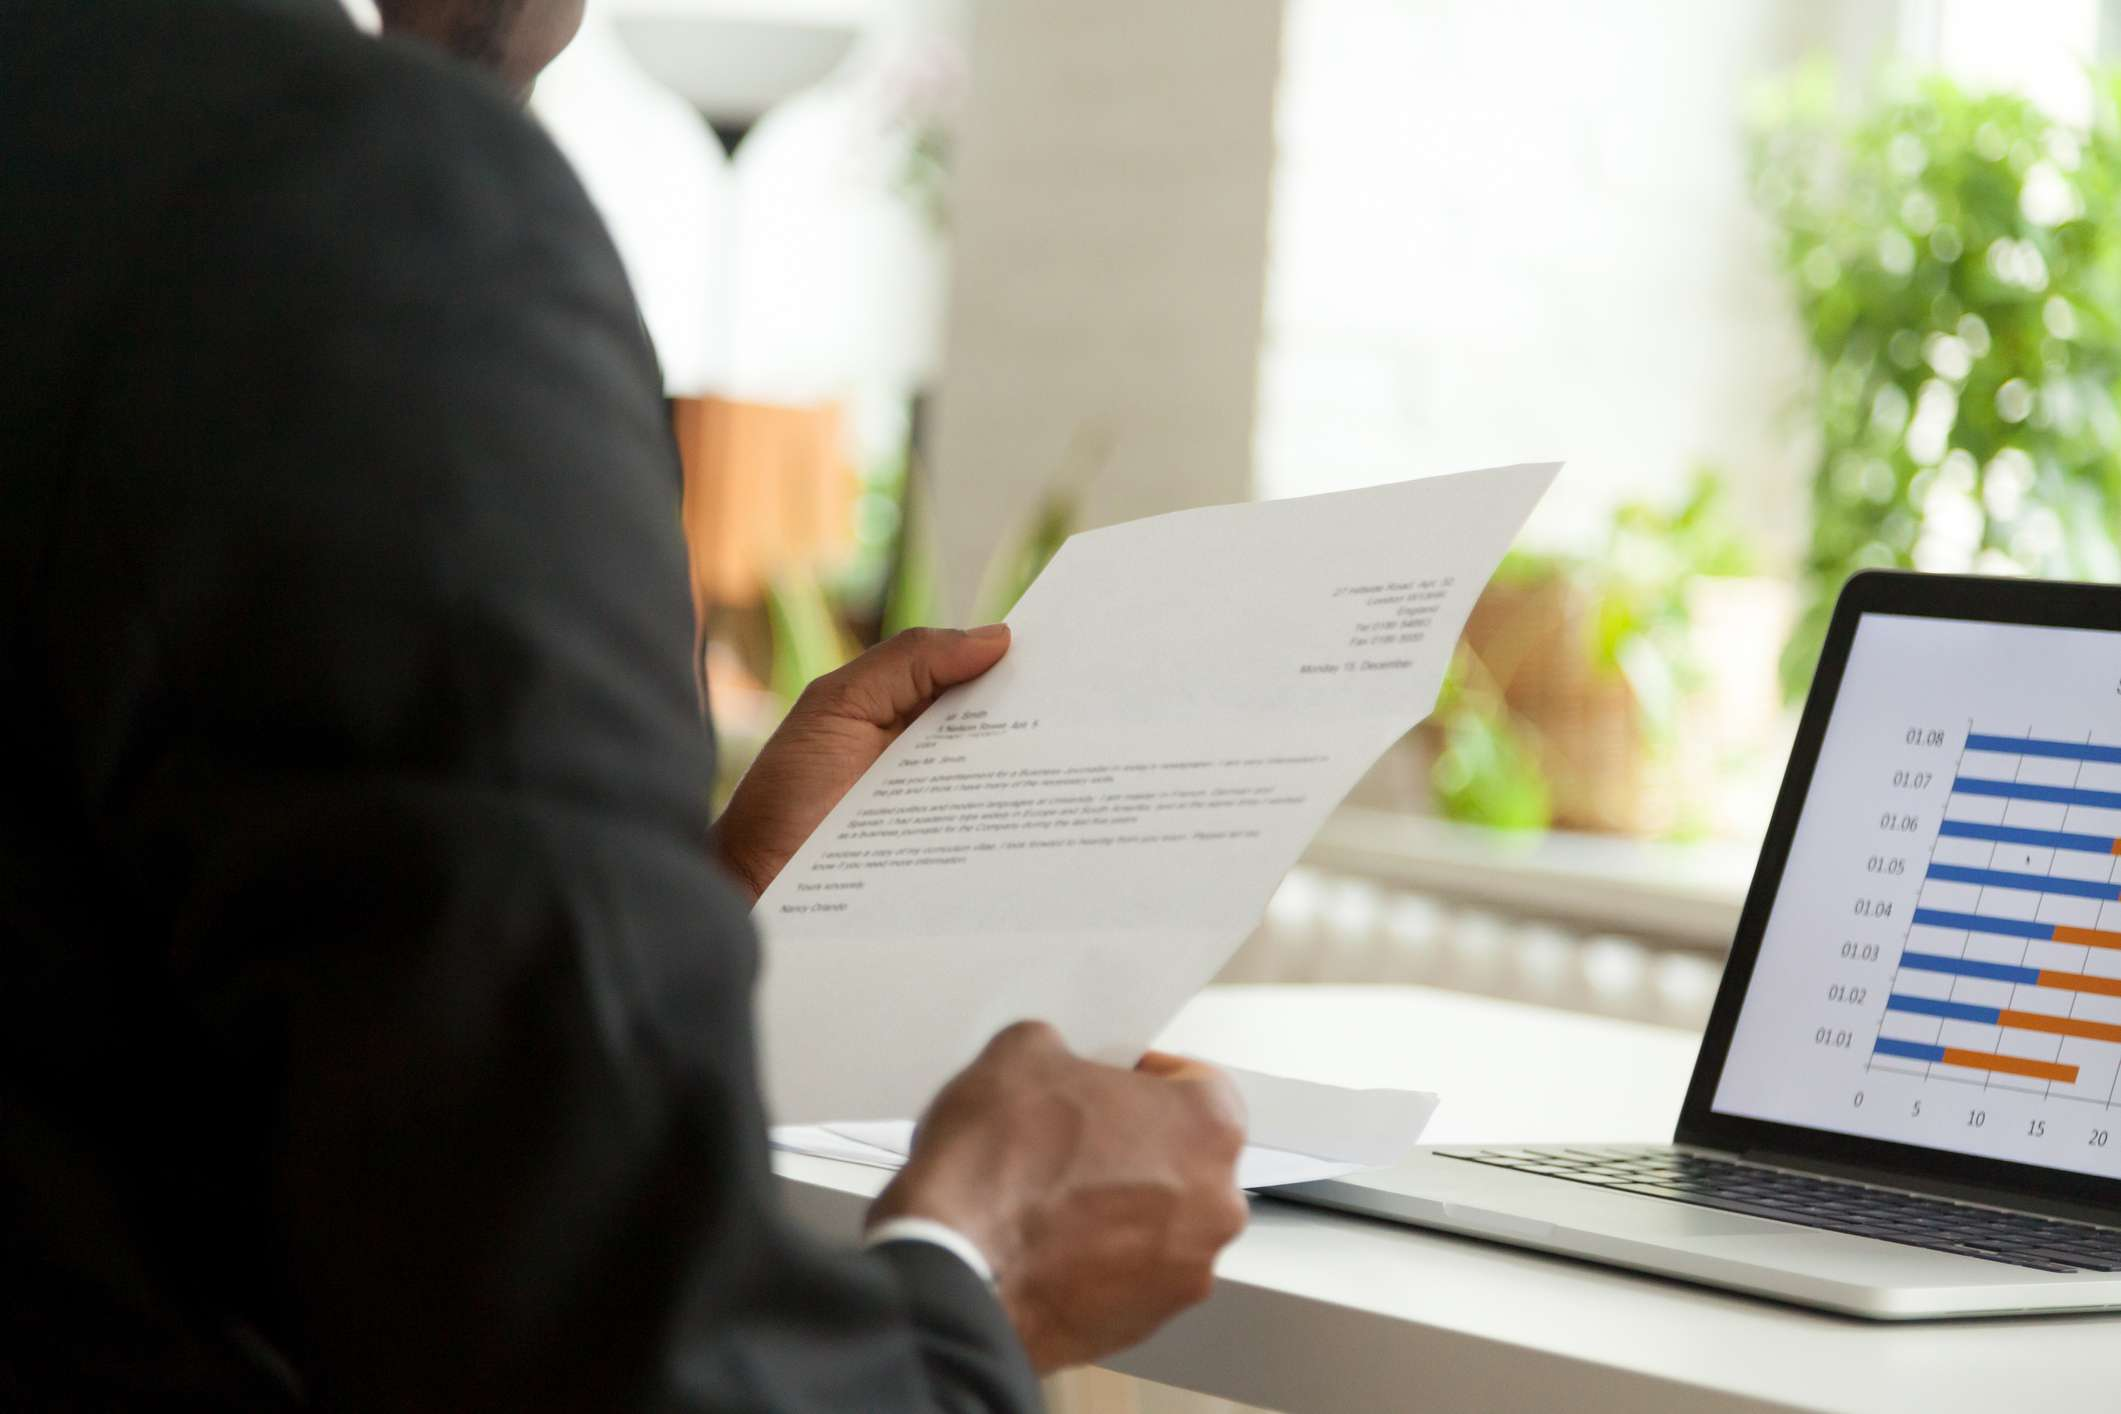 Whenever You Send A Résumé, A Cover Letter Should Always Be Attached. from www.thebalancecareers.com